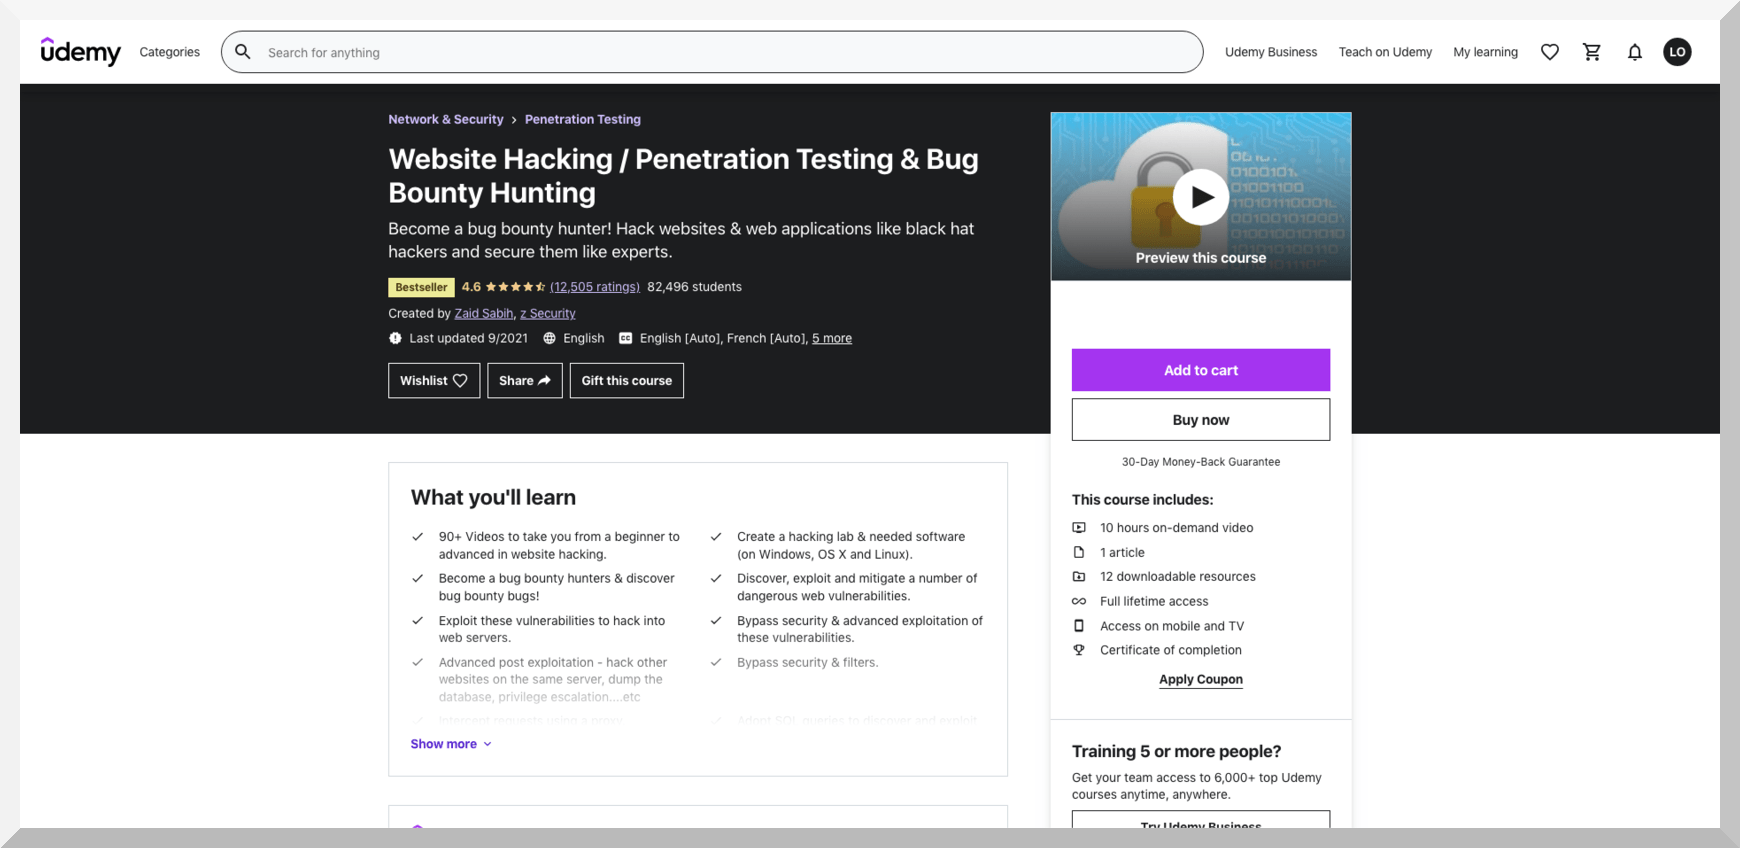 Website Hacking, Penetration Testing, and Bug Bounty Hunting – Udemy